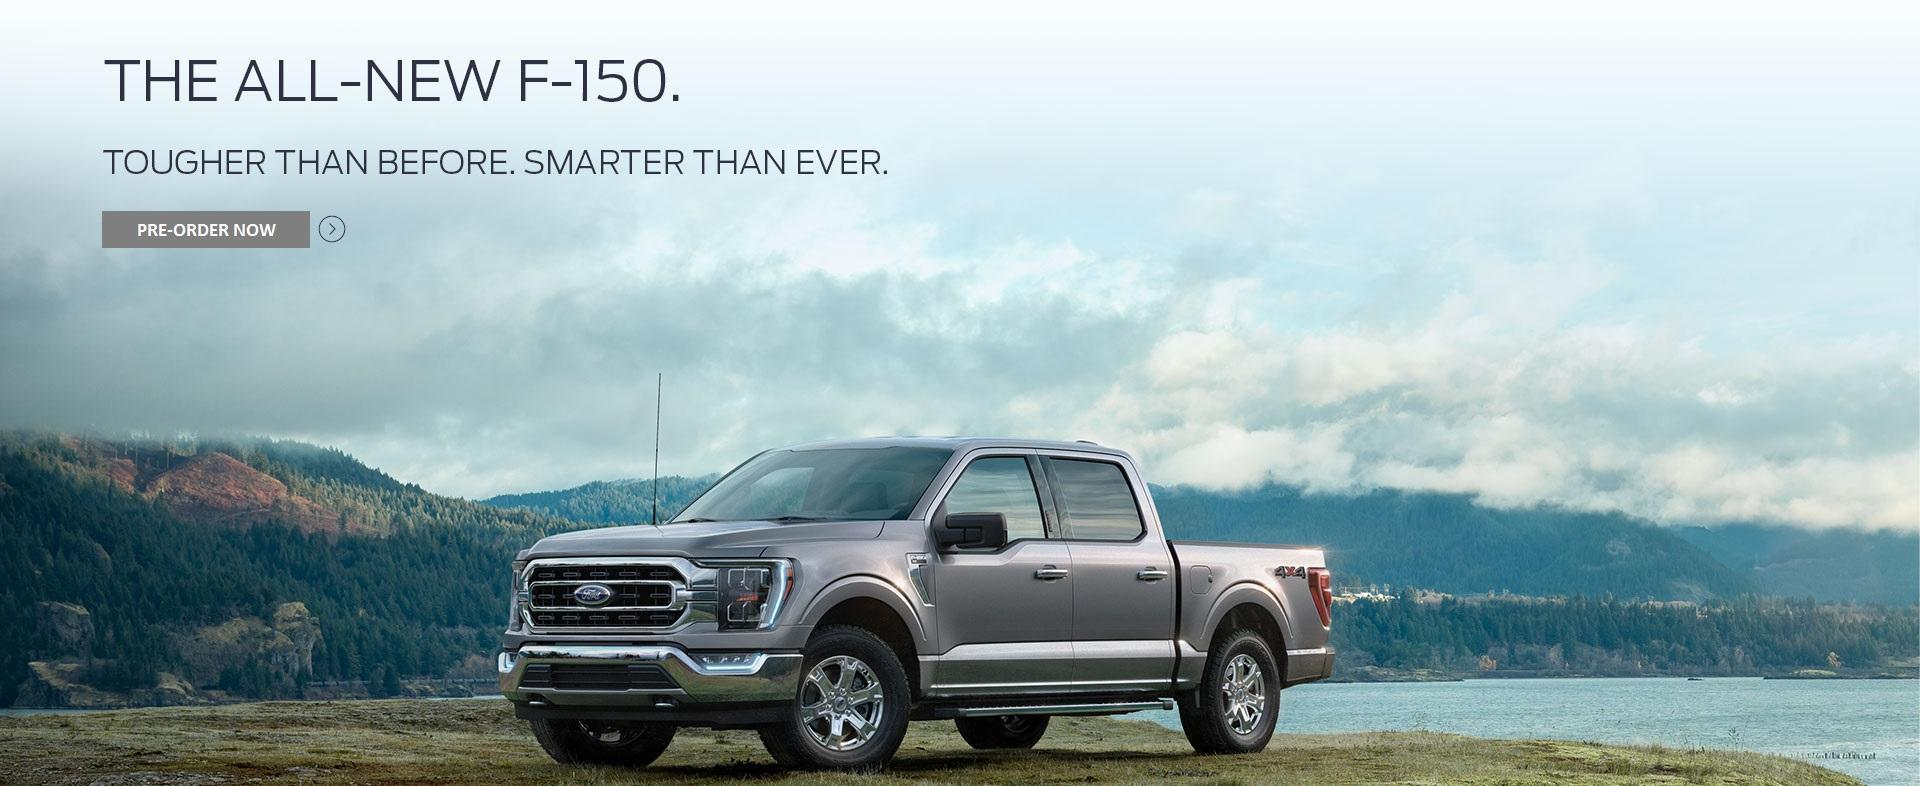 Ford Home 2021 F-150